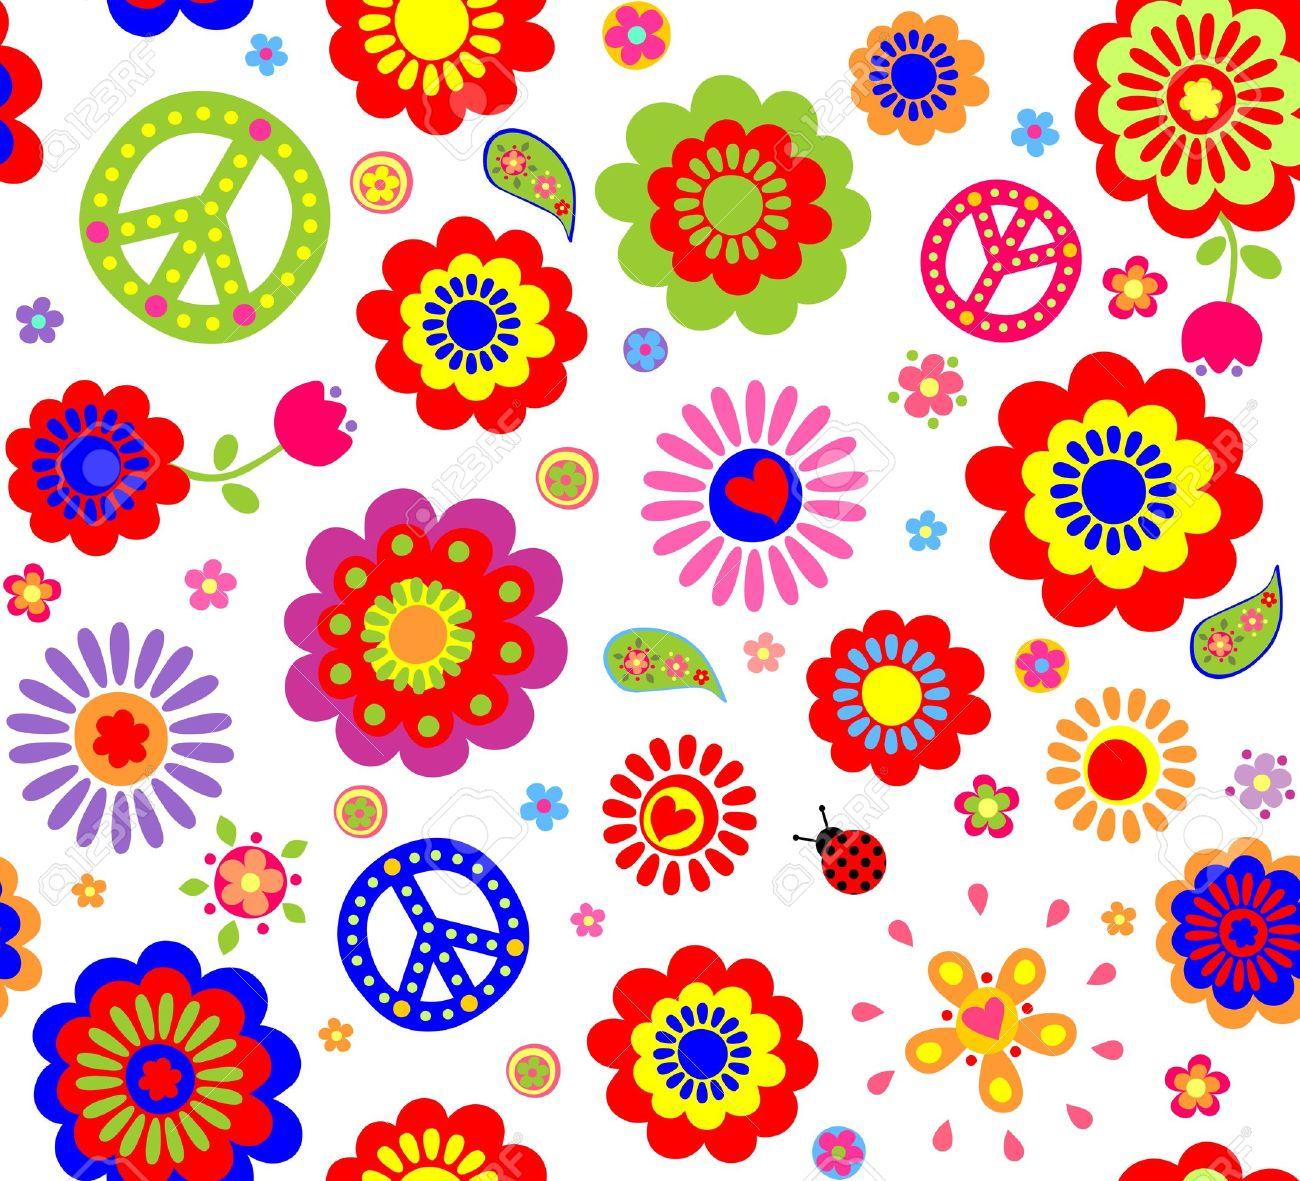 Hippie Wallpaper With Abstract Flowers Stock Vector